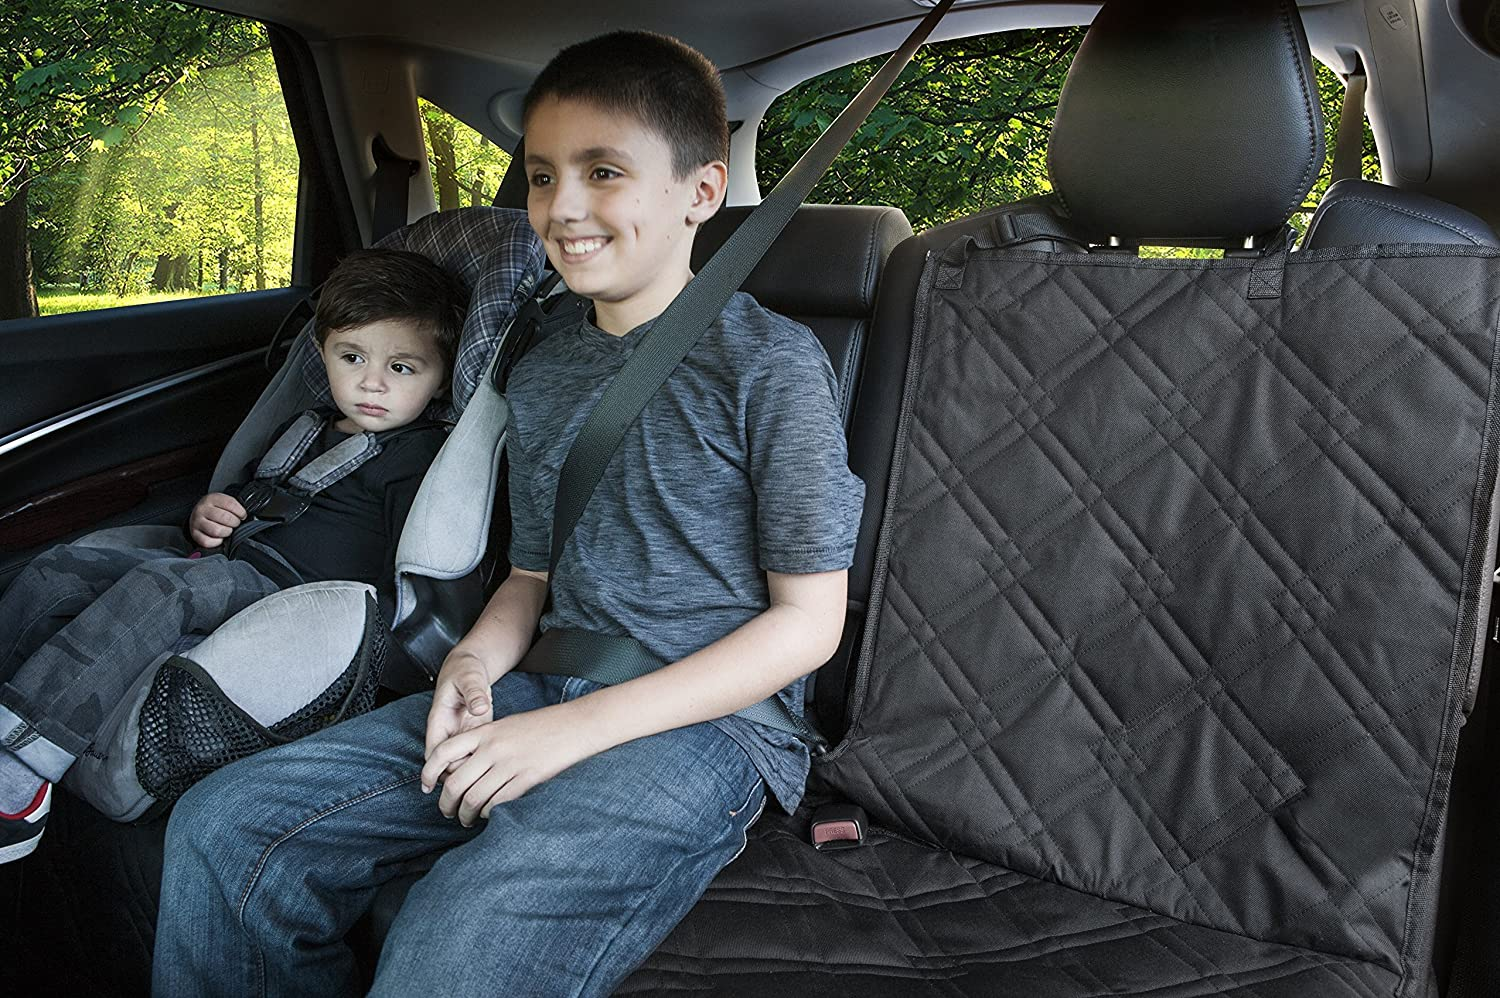 Rumbi Baby Backseat Protector for Any Car Made of Waterproof Truck and SUV Non-Slip Material with Removable Zipper